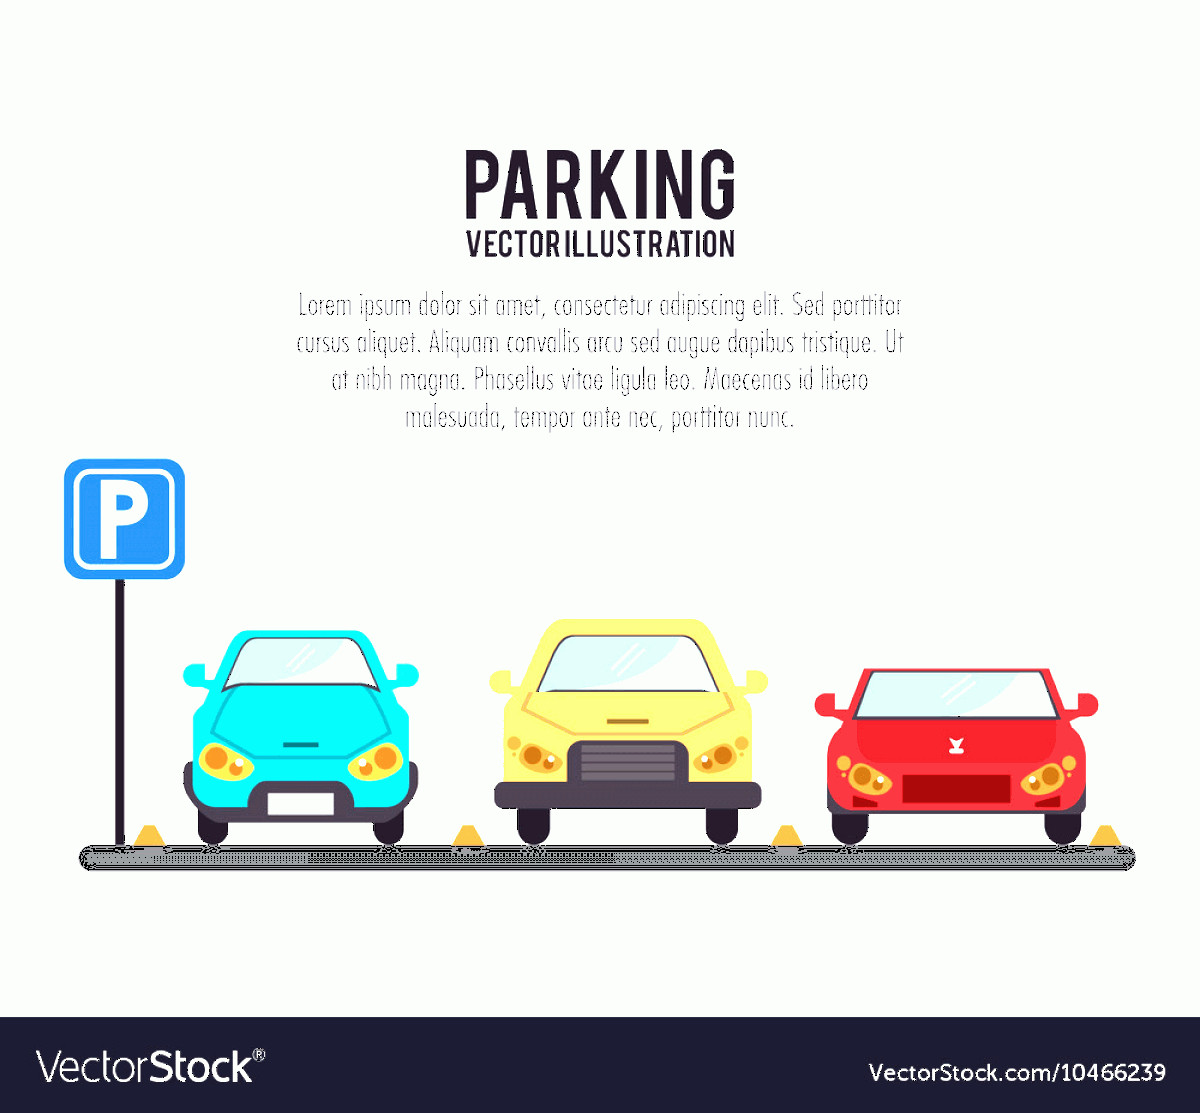 Vector Car: Vehicle Parking Zone Design Vector